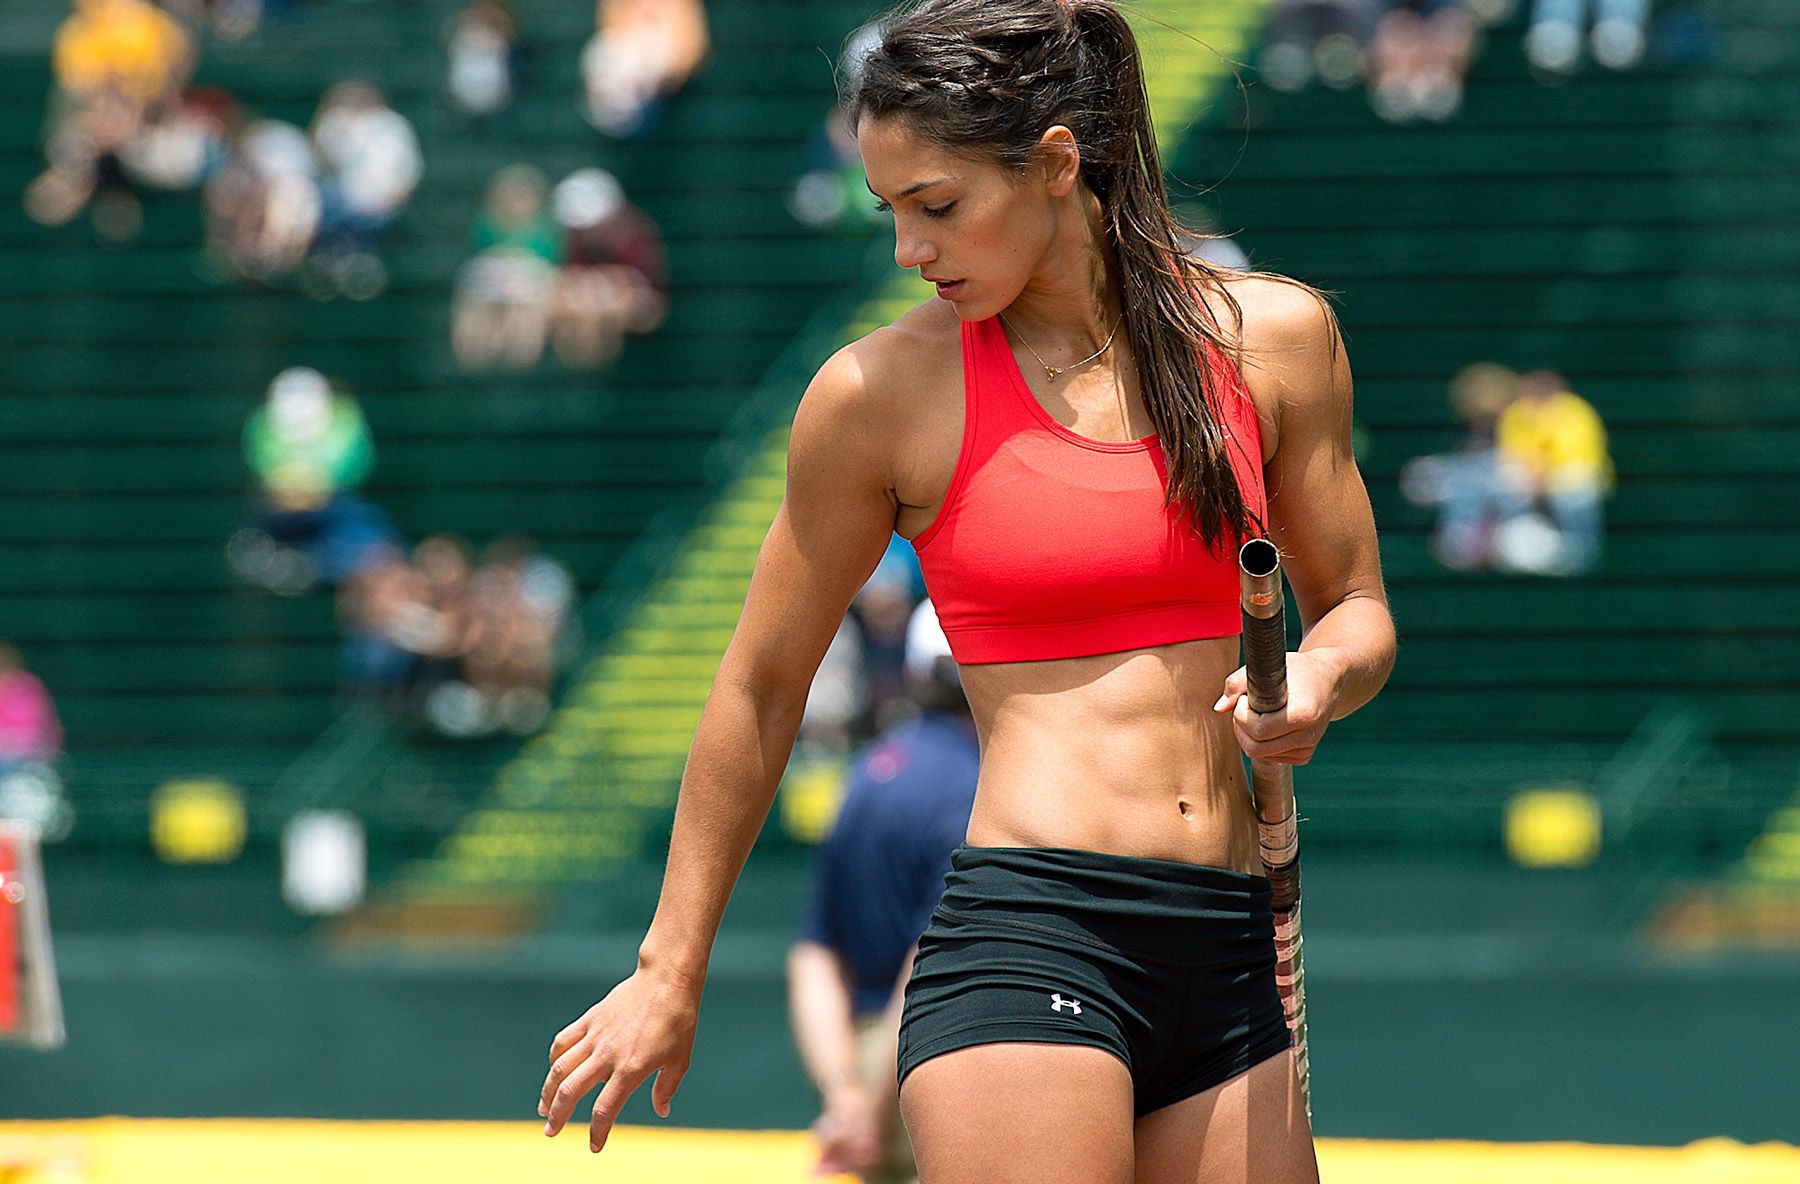 11_1ustrials2012_alison_stokke_pole_vault_track_and_field_image_jeff_cohen_photographer_lb.jpg